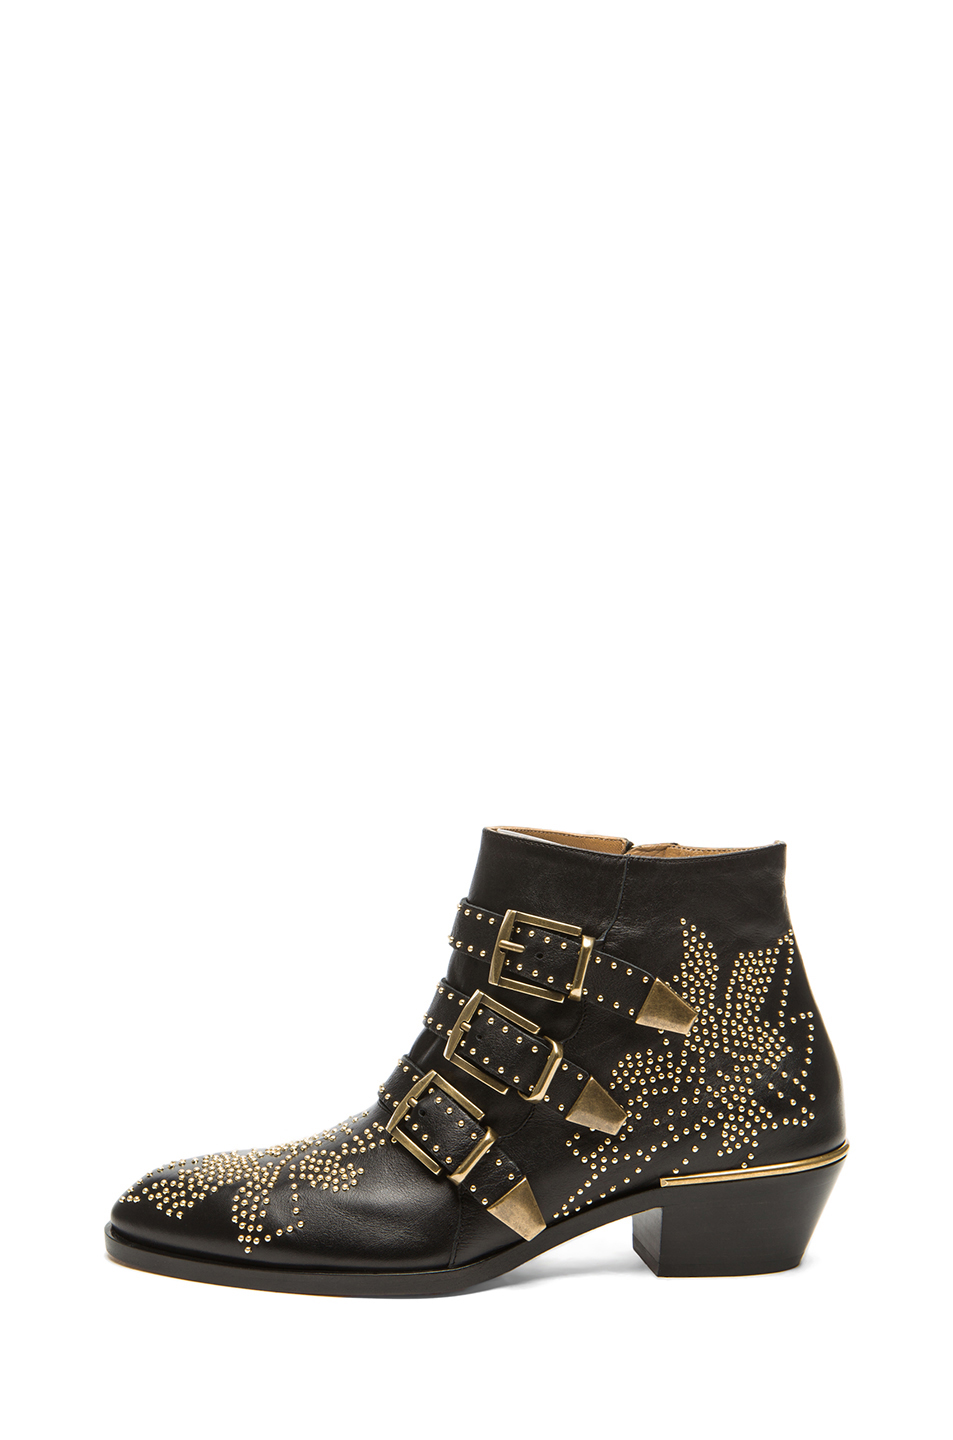 Chloe|Susanna Leather Studded Booties in Black